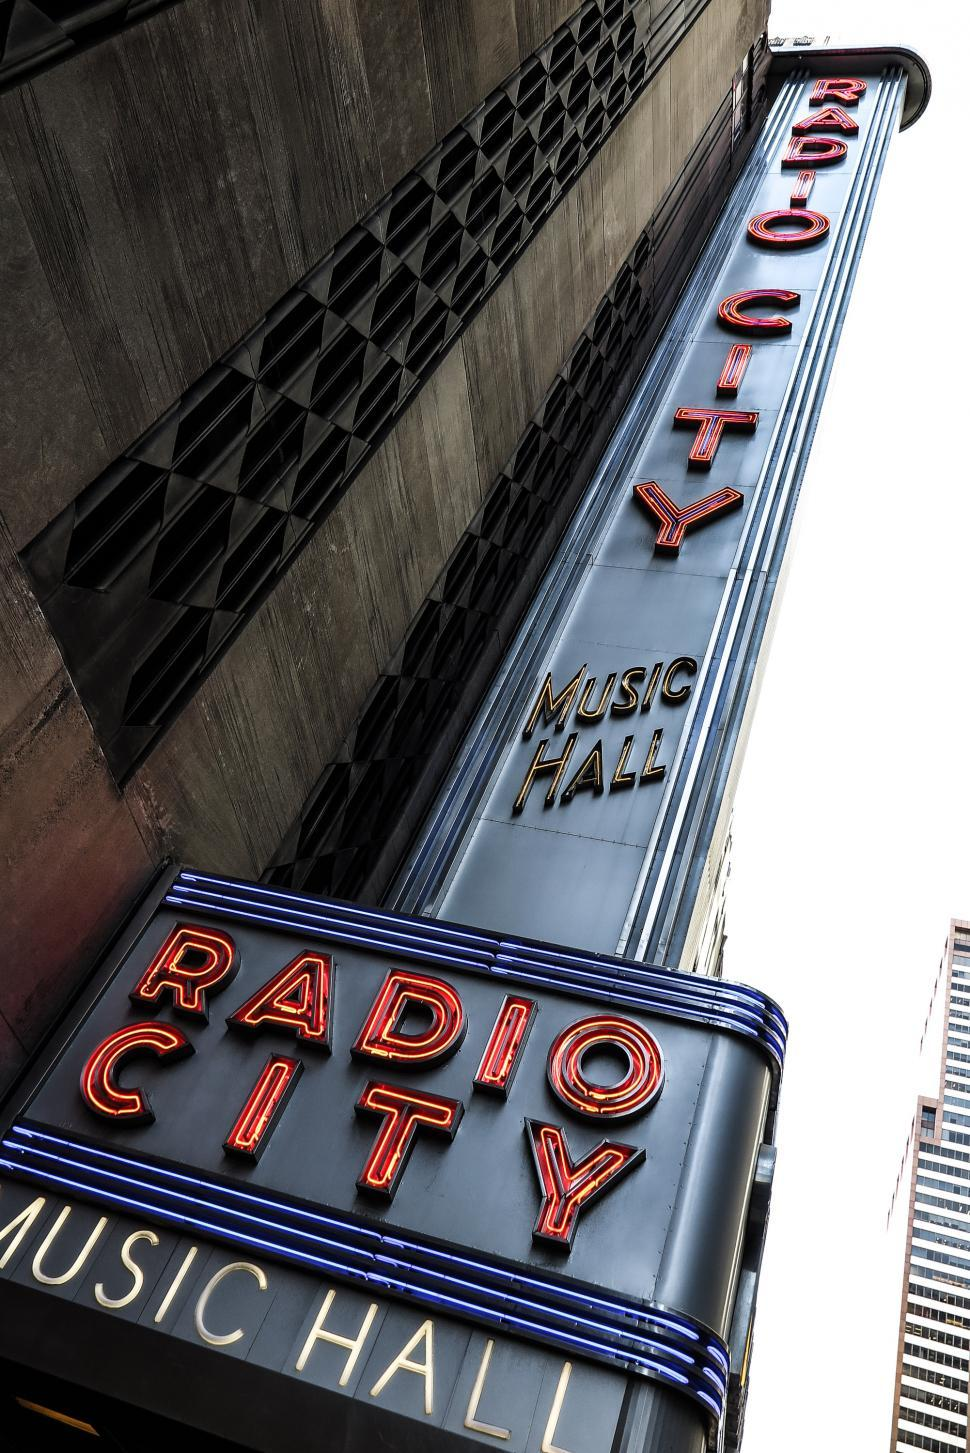 Download Free Stock HD Photo of Tall Radio City Music Hall neon sign Online